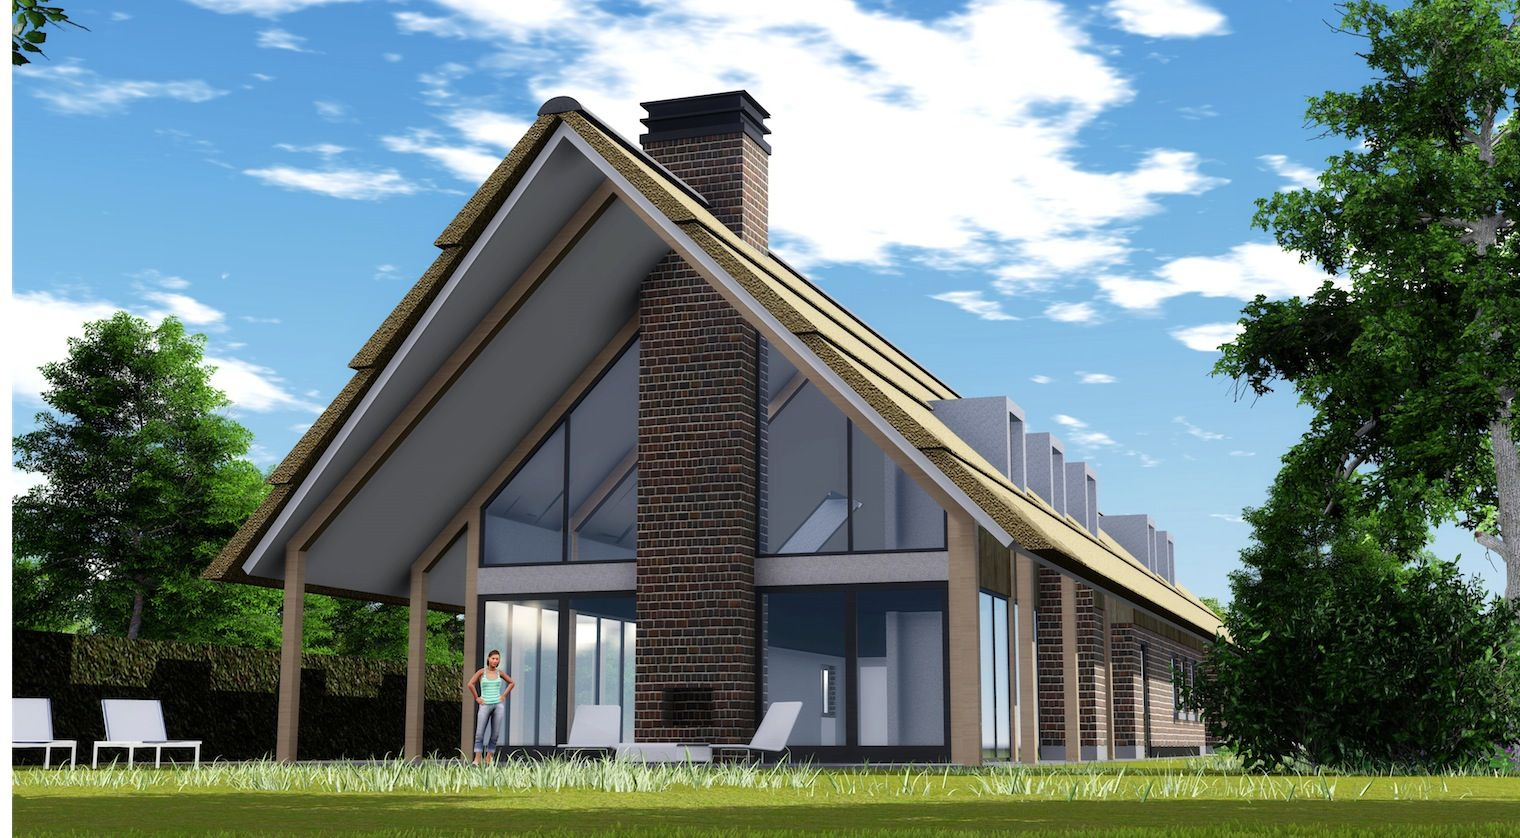 Buro stad en land b v visualisatie stable woning huizen pinterest bungalow house and for Modern buro land